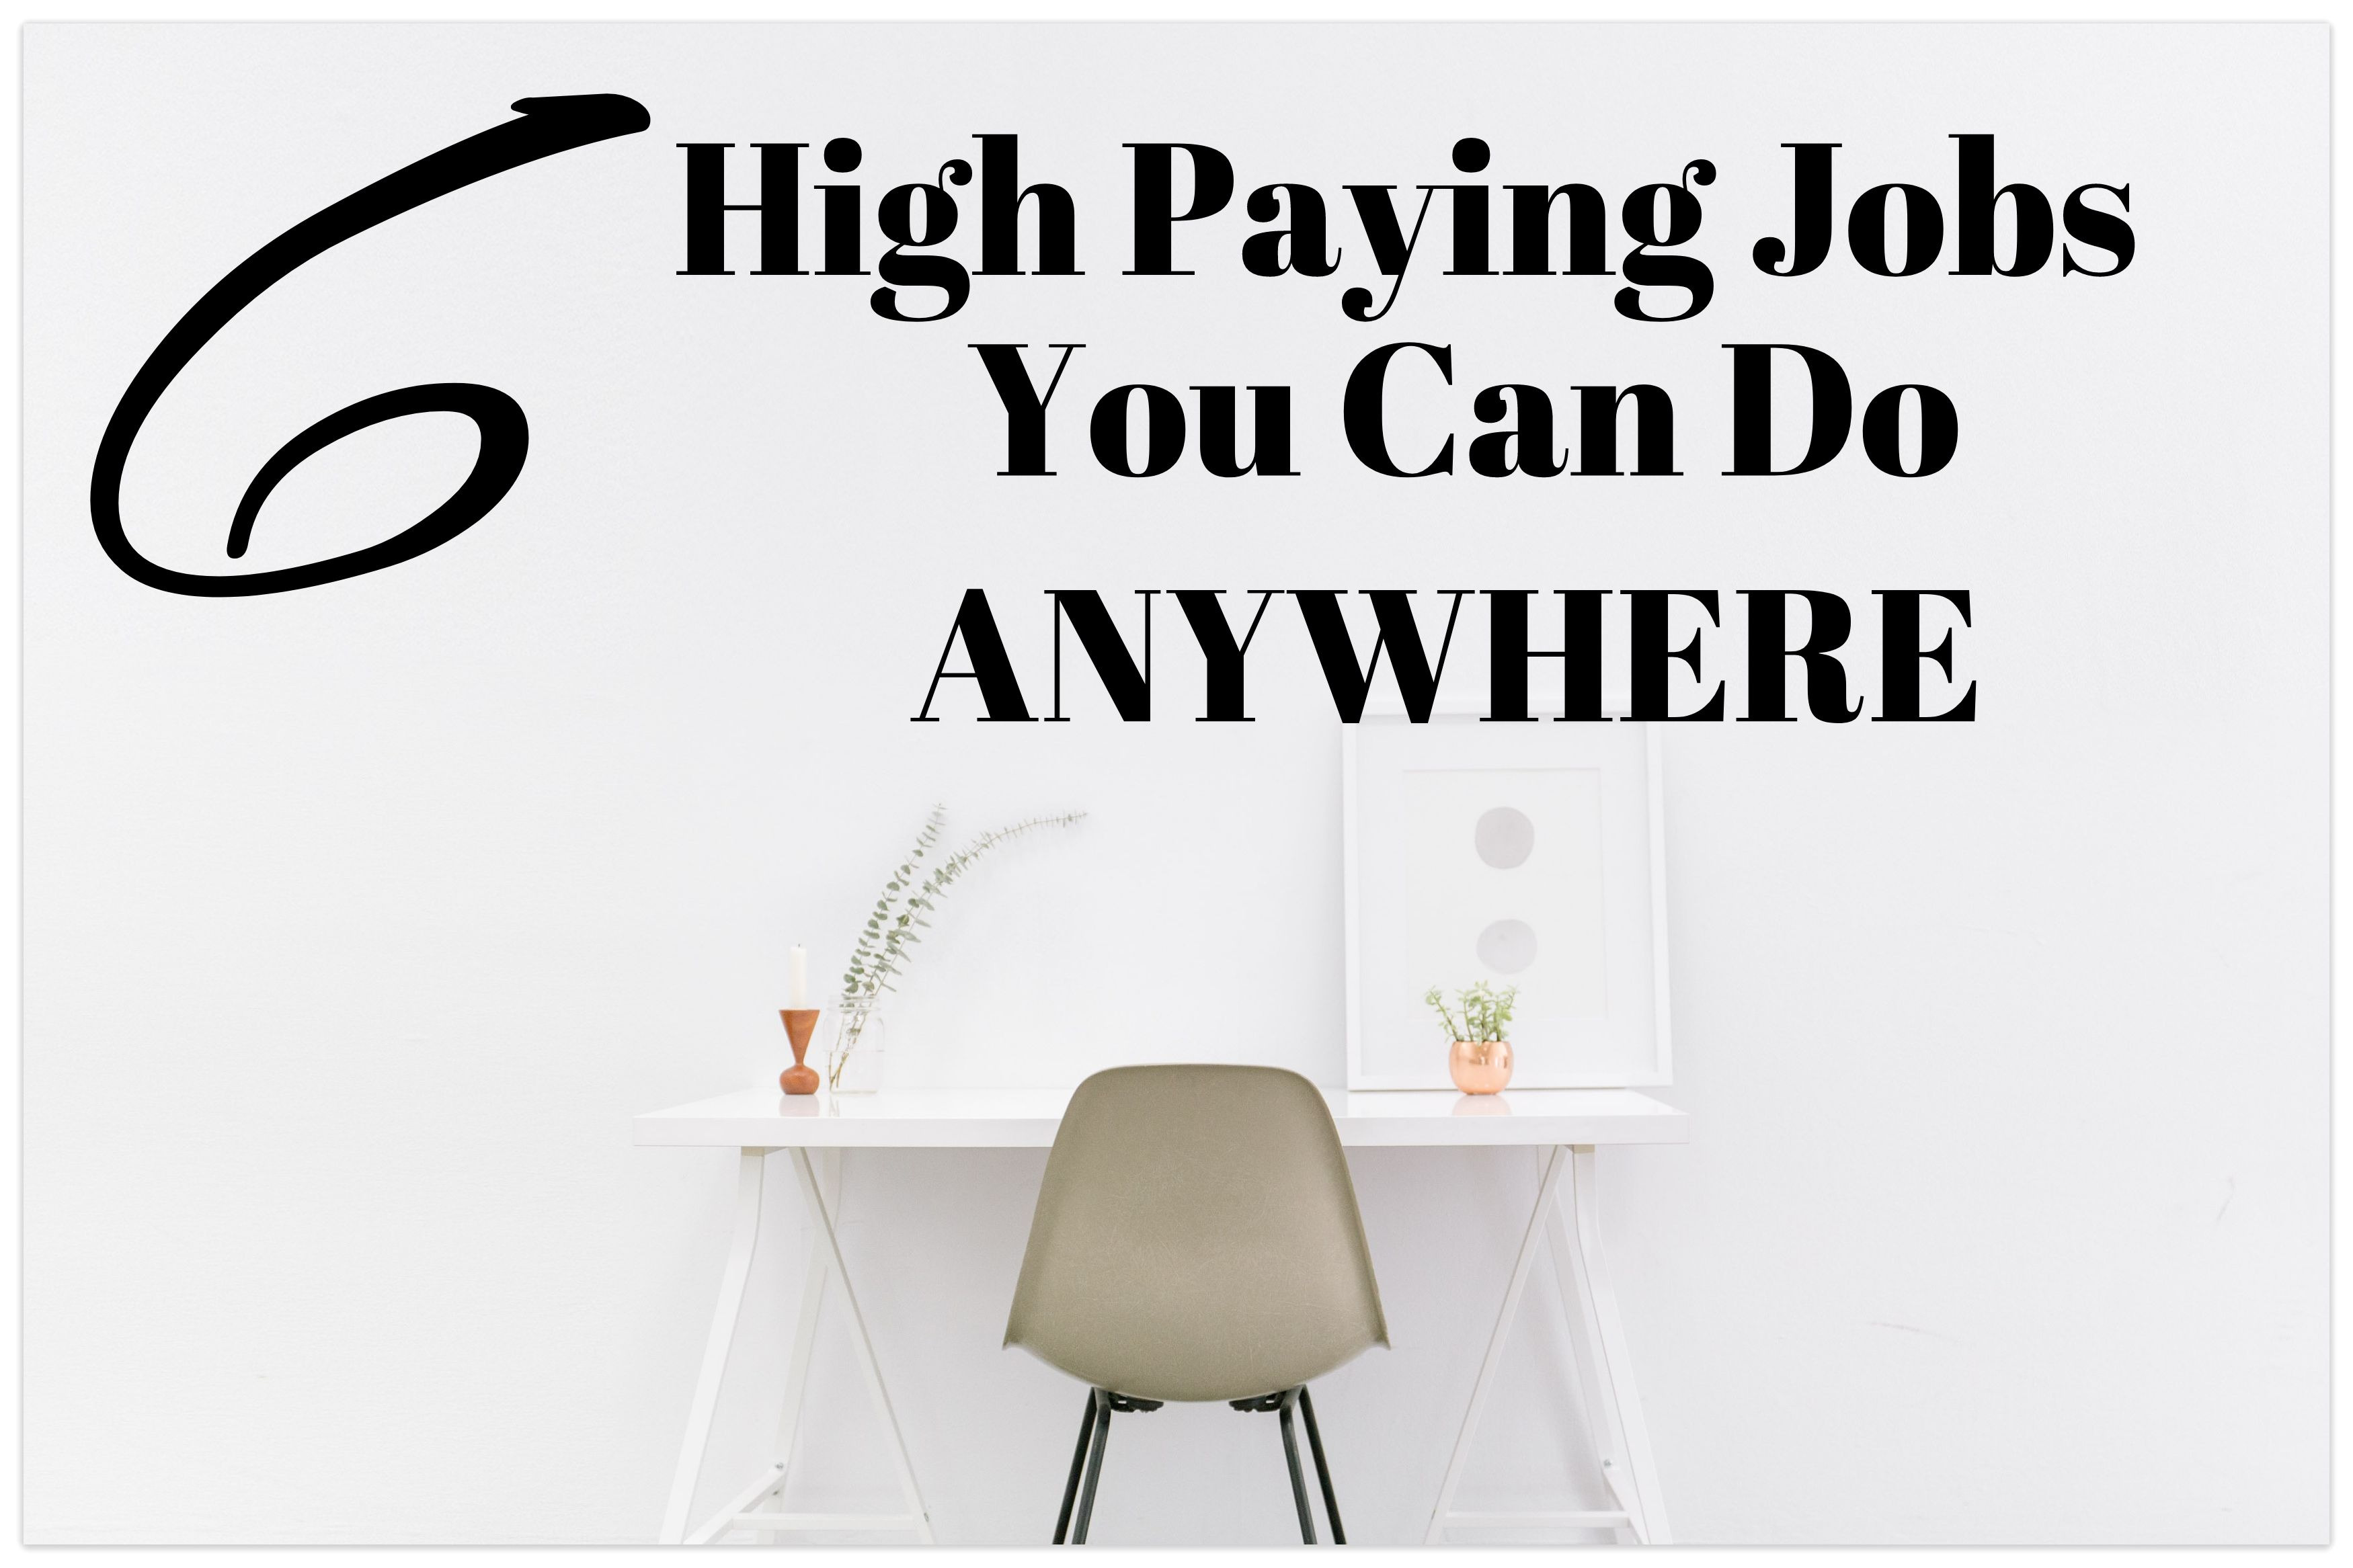 20 Work From Home Jobs 6 Highest Paying Work From Home Jobs Super Simple Ways